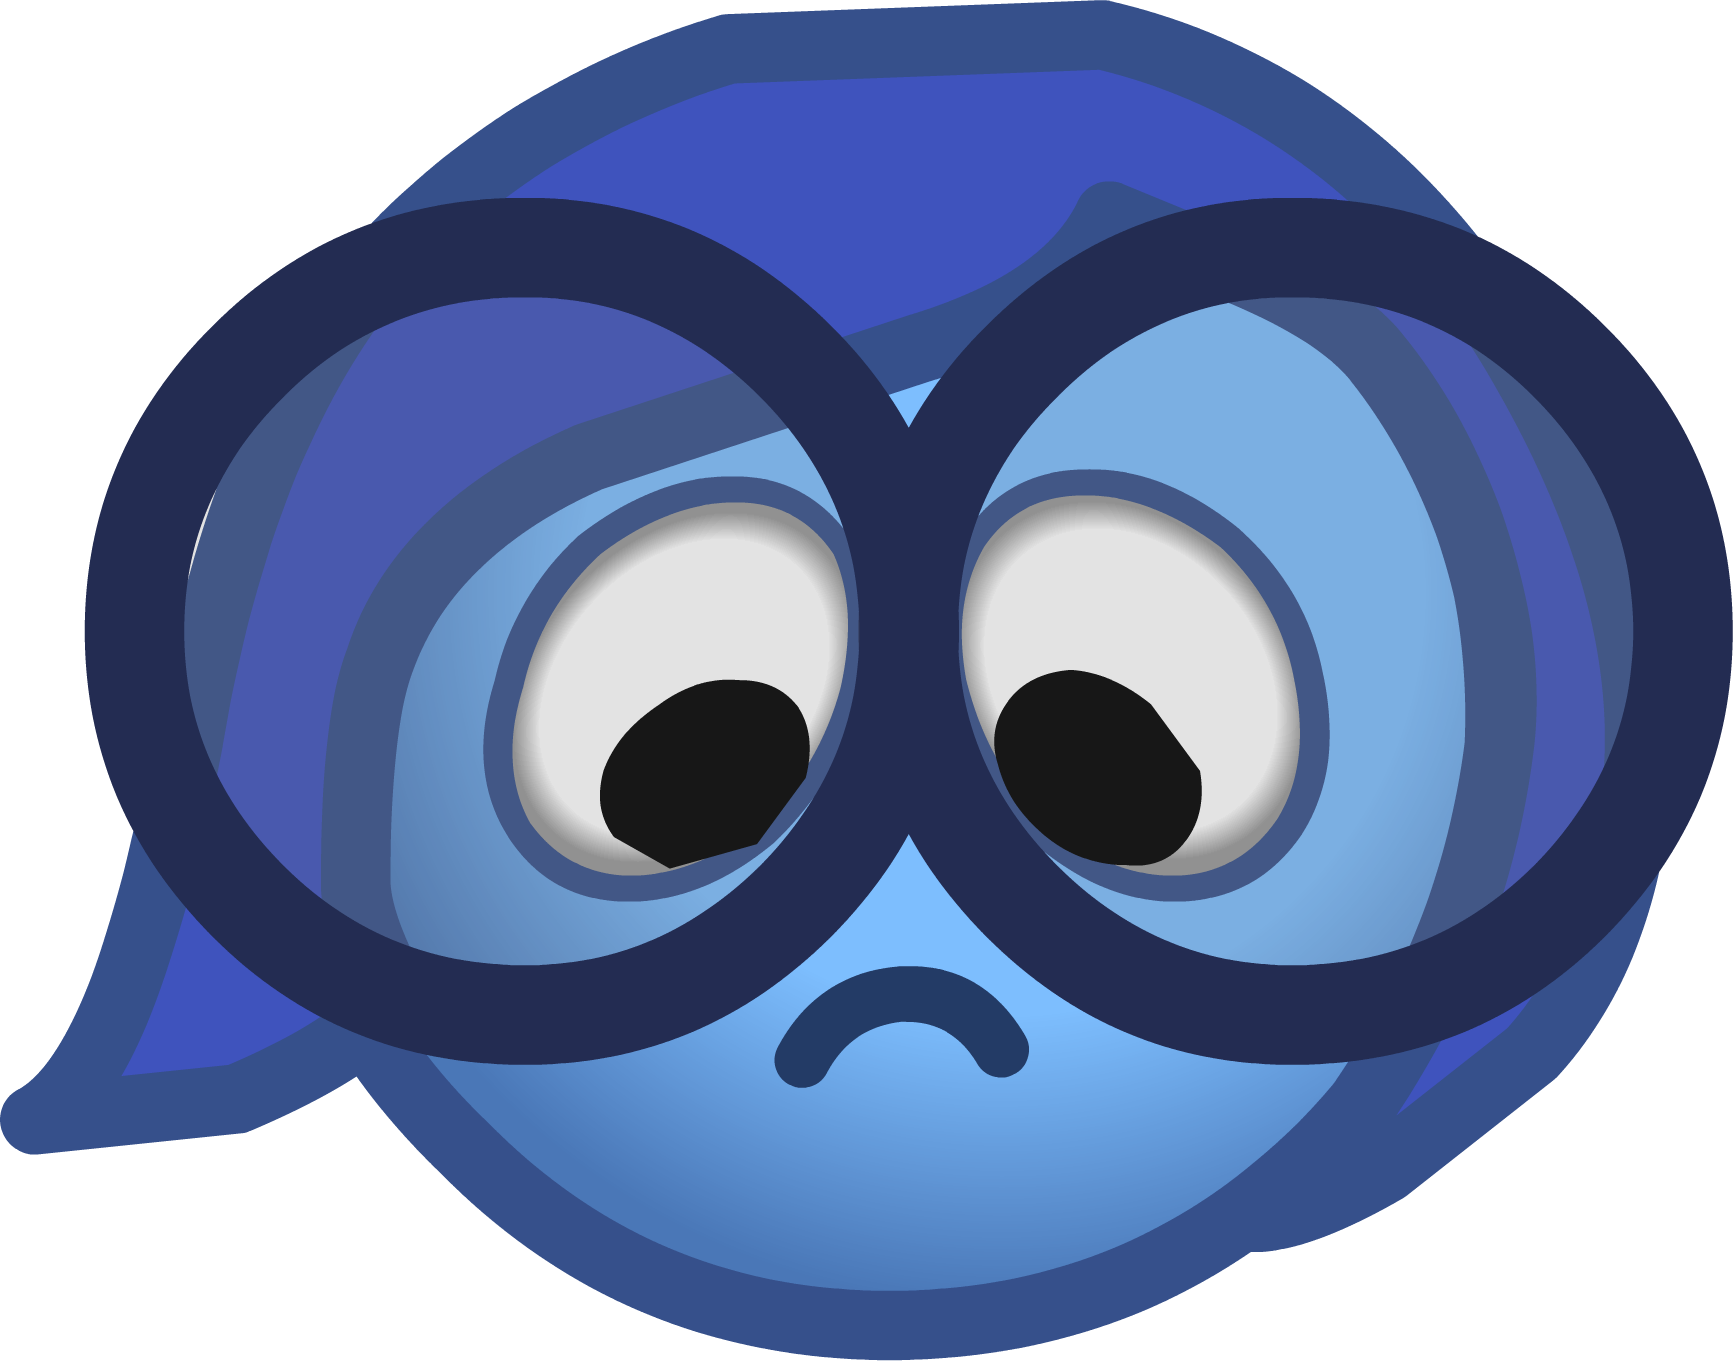 Inside_Out_Party_2015_Emoticons_Sadness.png